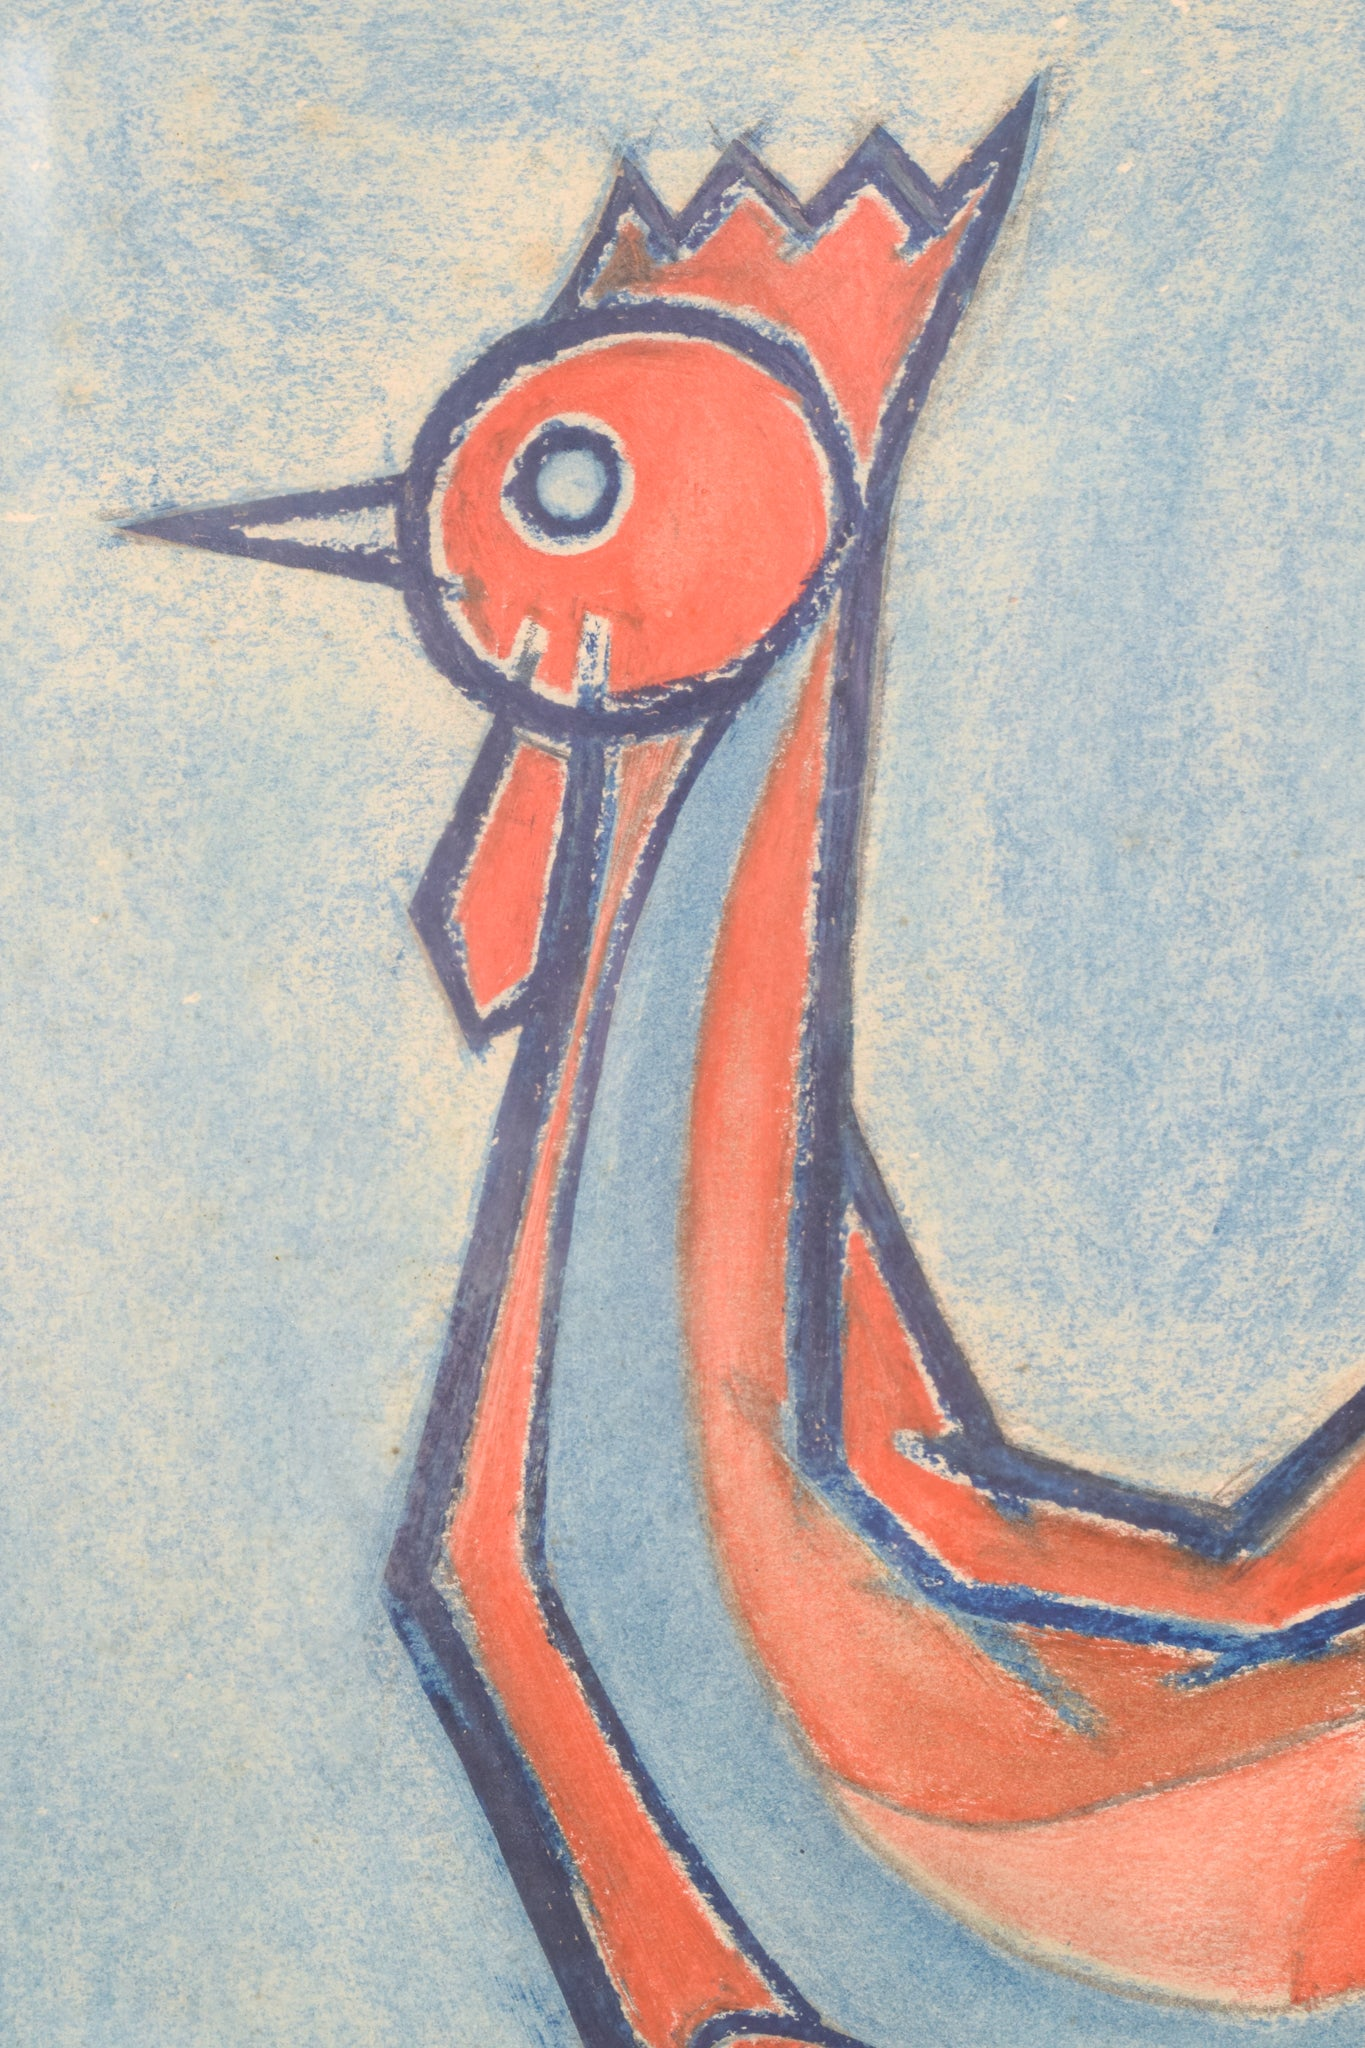 Modernist Pastel of a Cockerel Figurine by Francesc Bosch_Detail